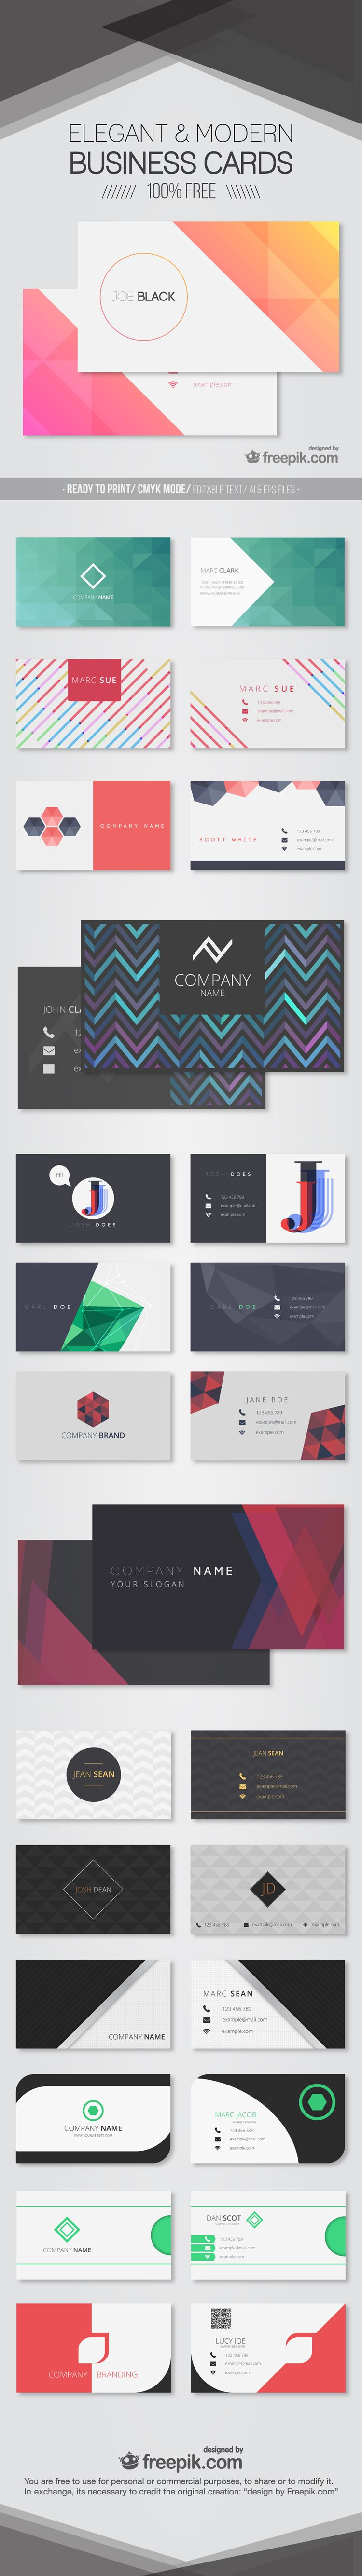 30 Free Modern Business Card Templates | Business cards, Card ...